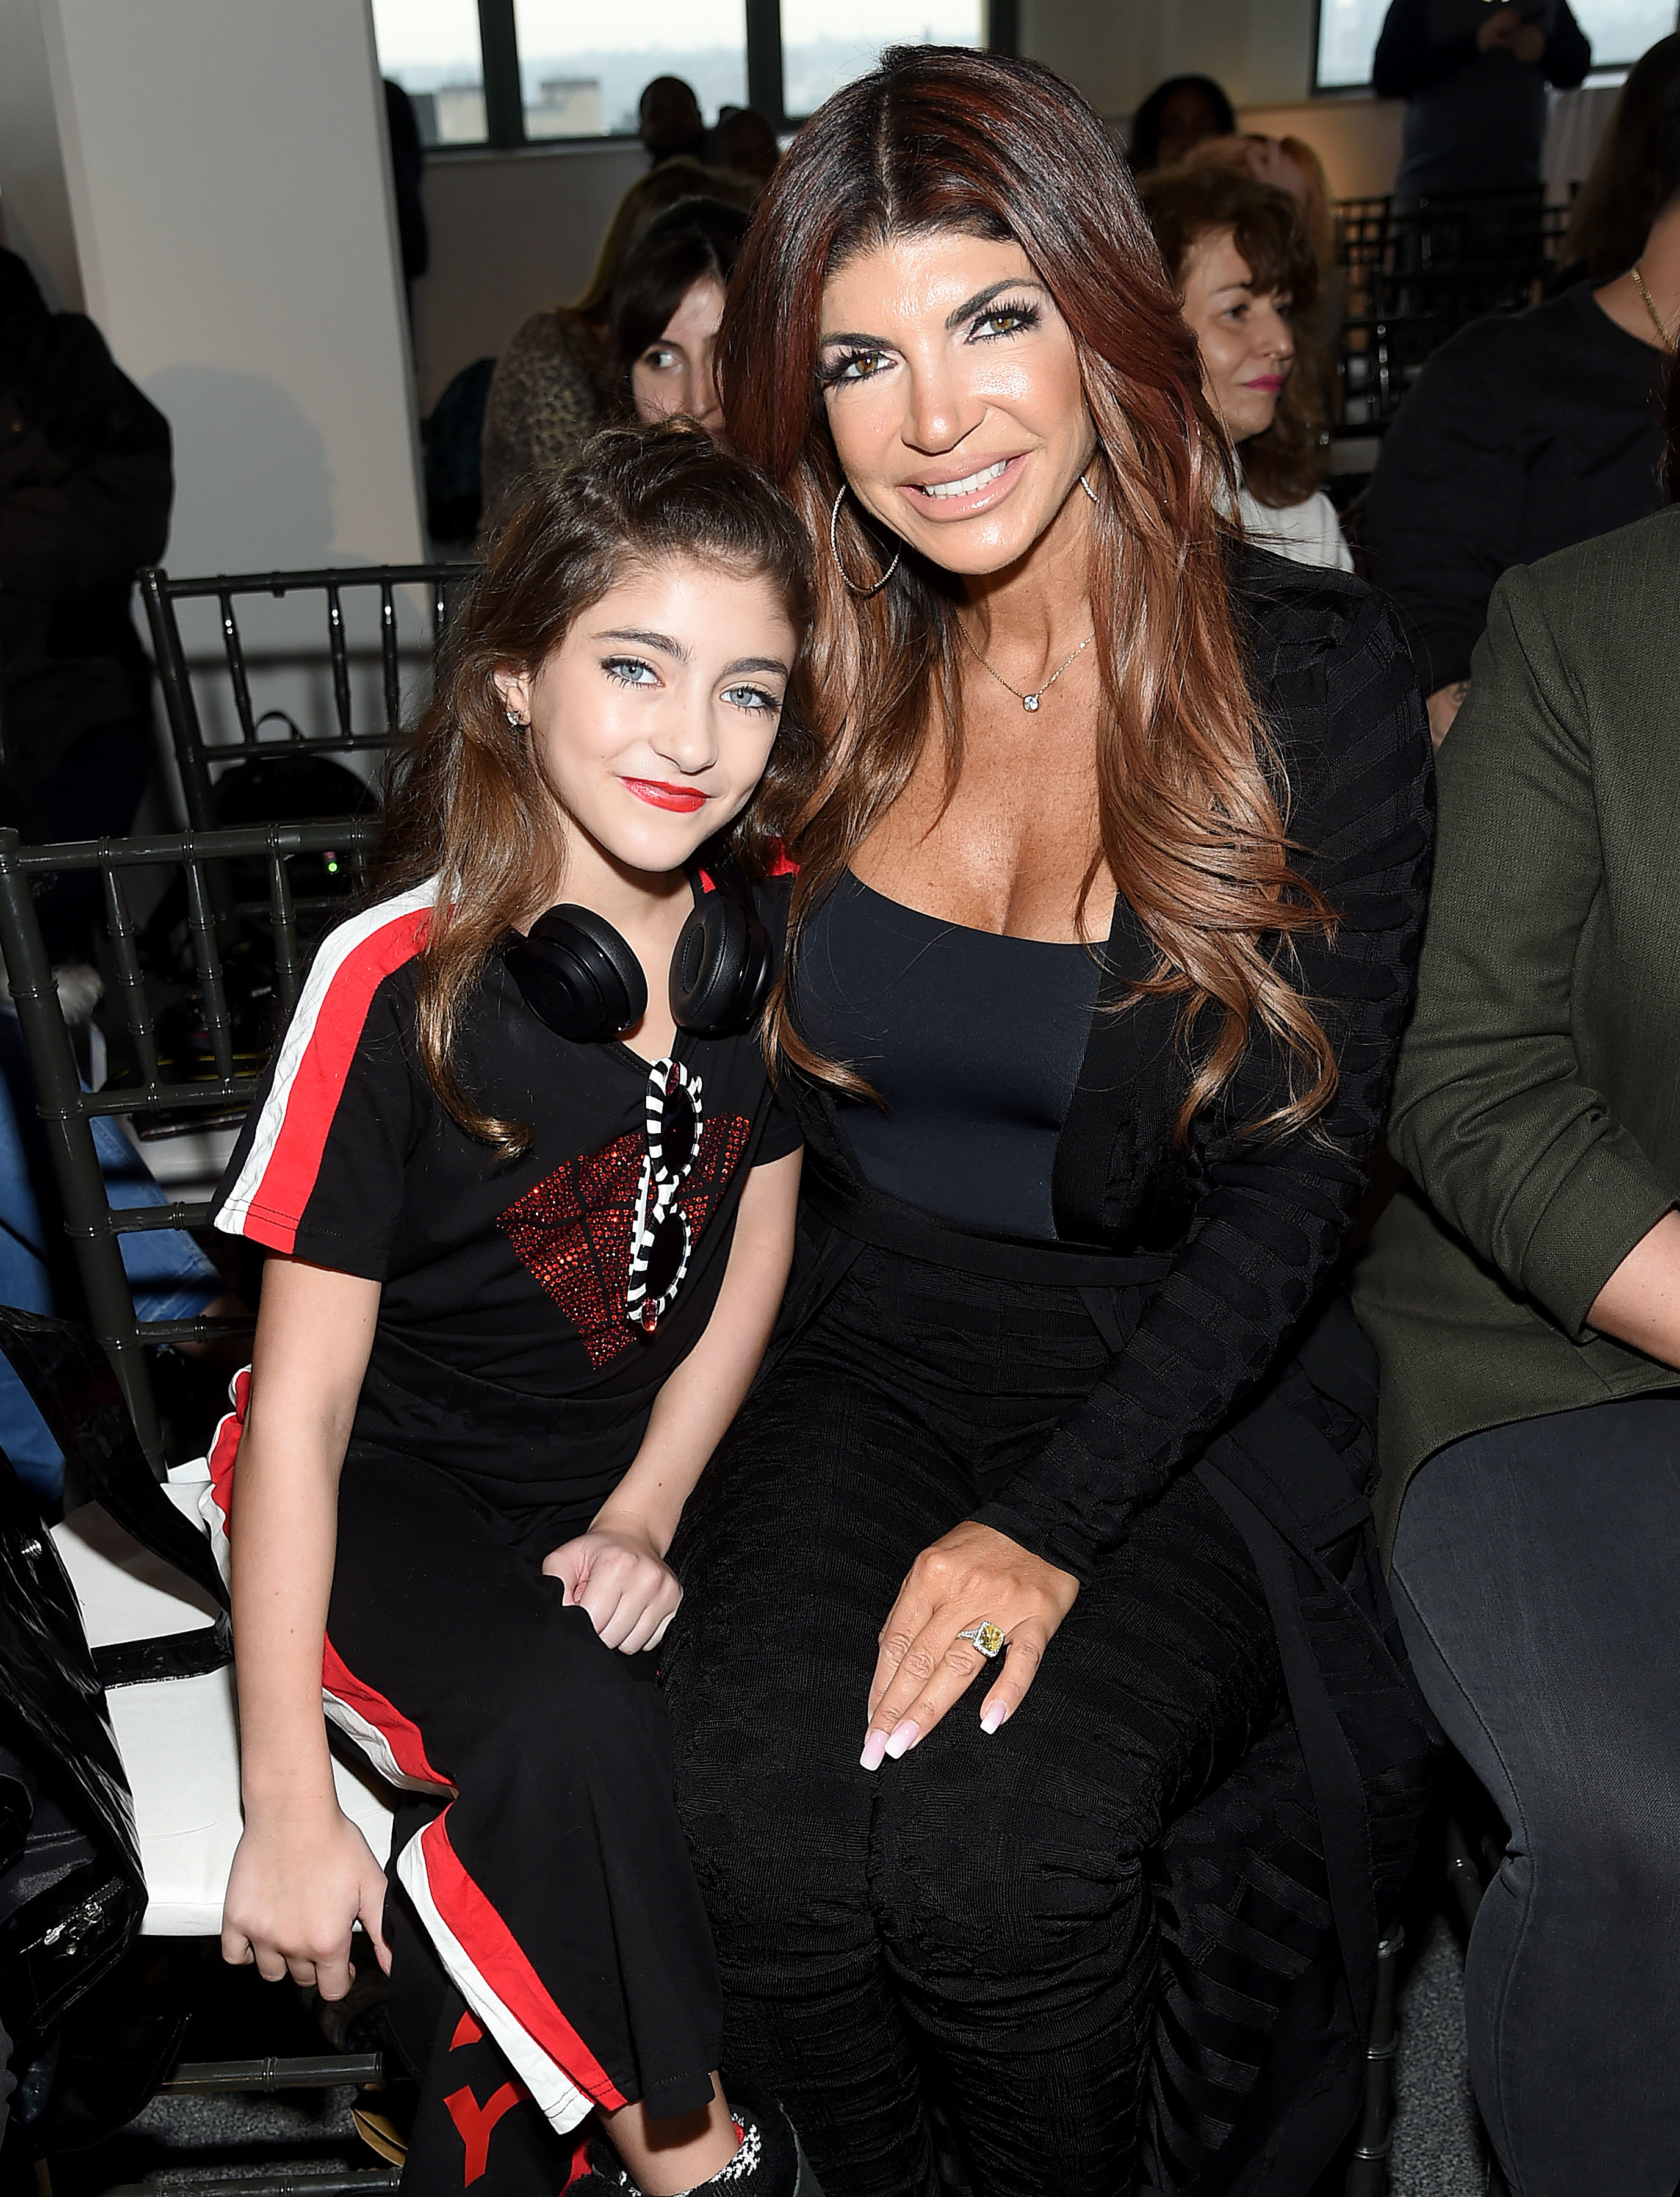 Audriana Giudice and Teresa Giudice attend the Cosmopolitan NYFW fashion show during New York Fashion Week at Tribeca 360 in New York City on Feb. 8, 2019.